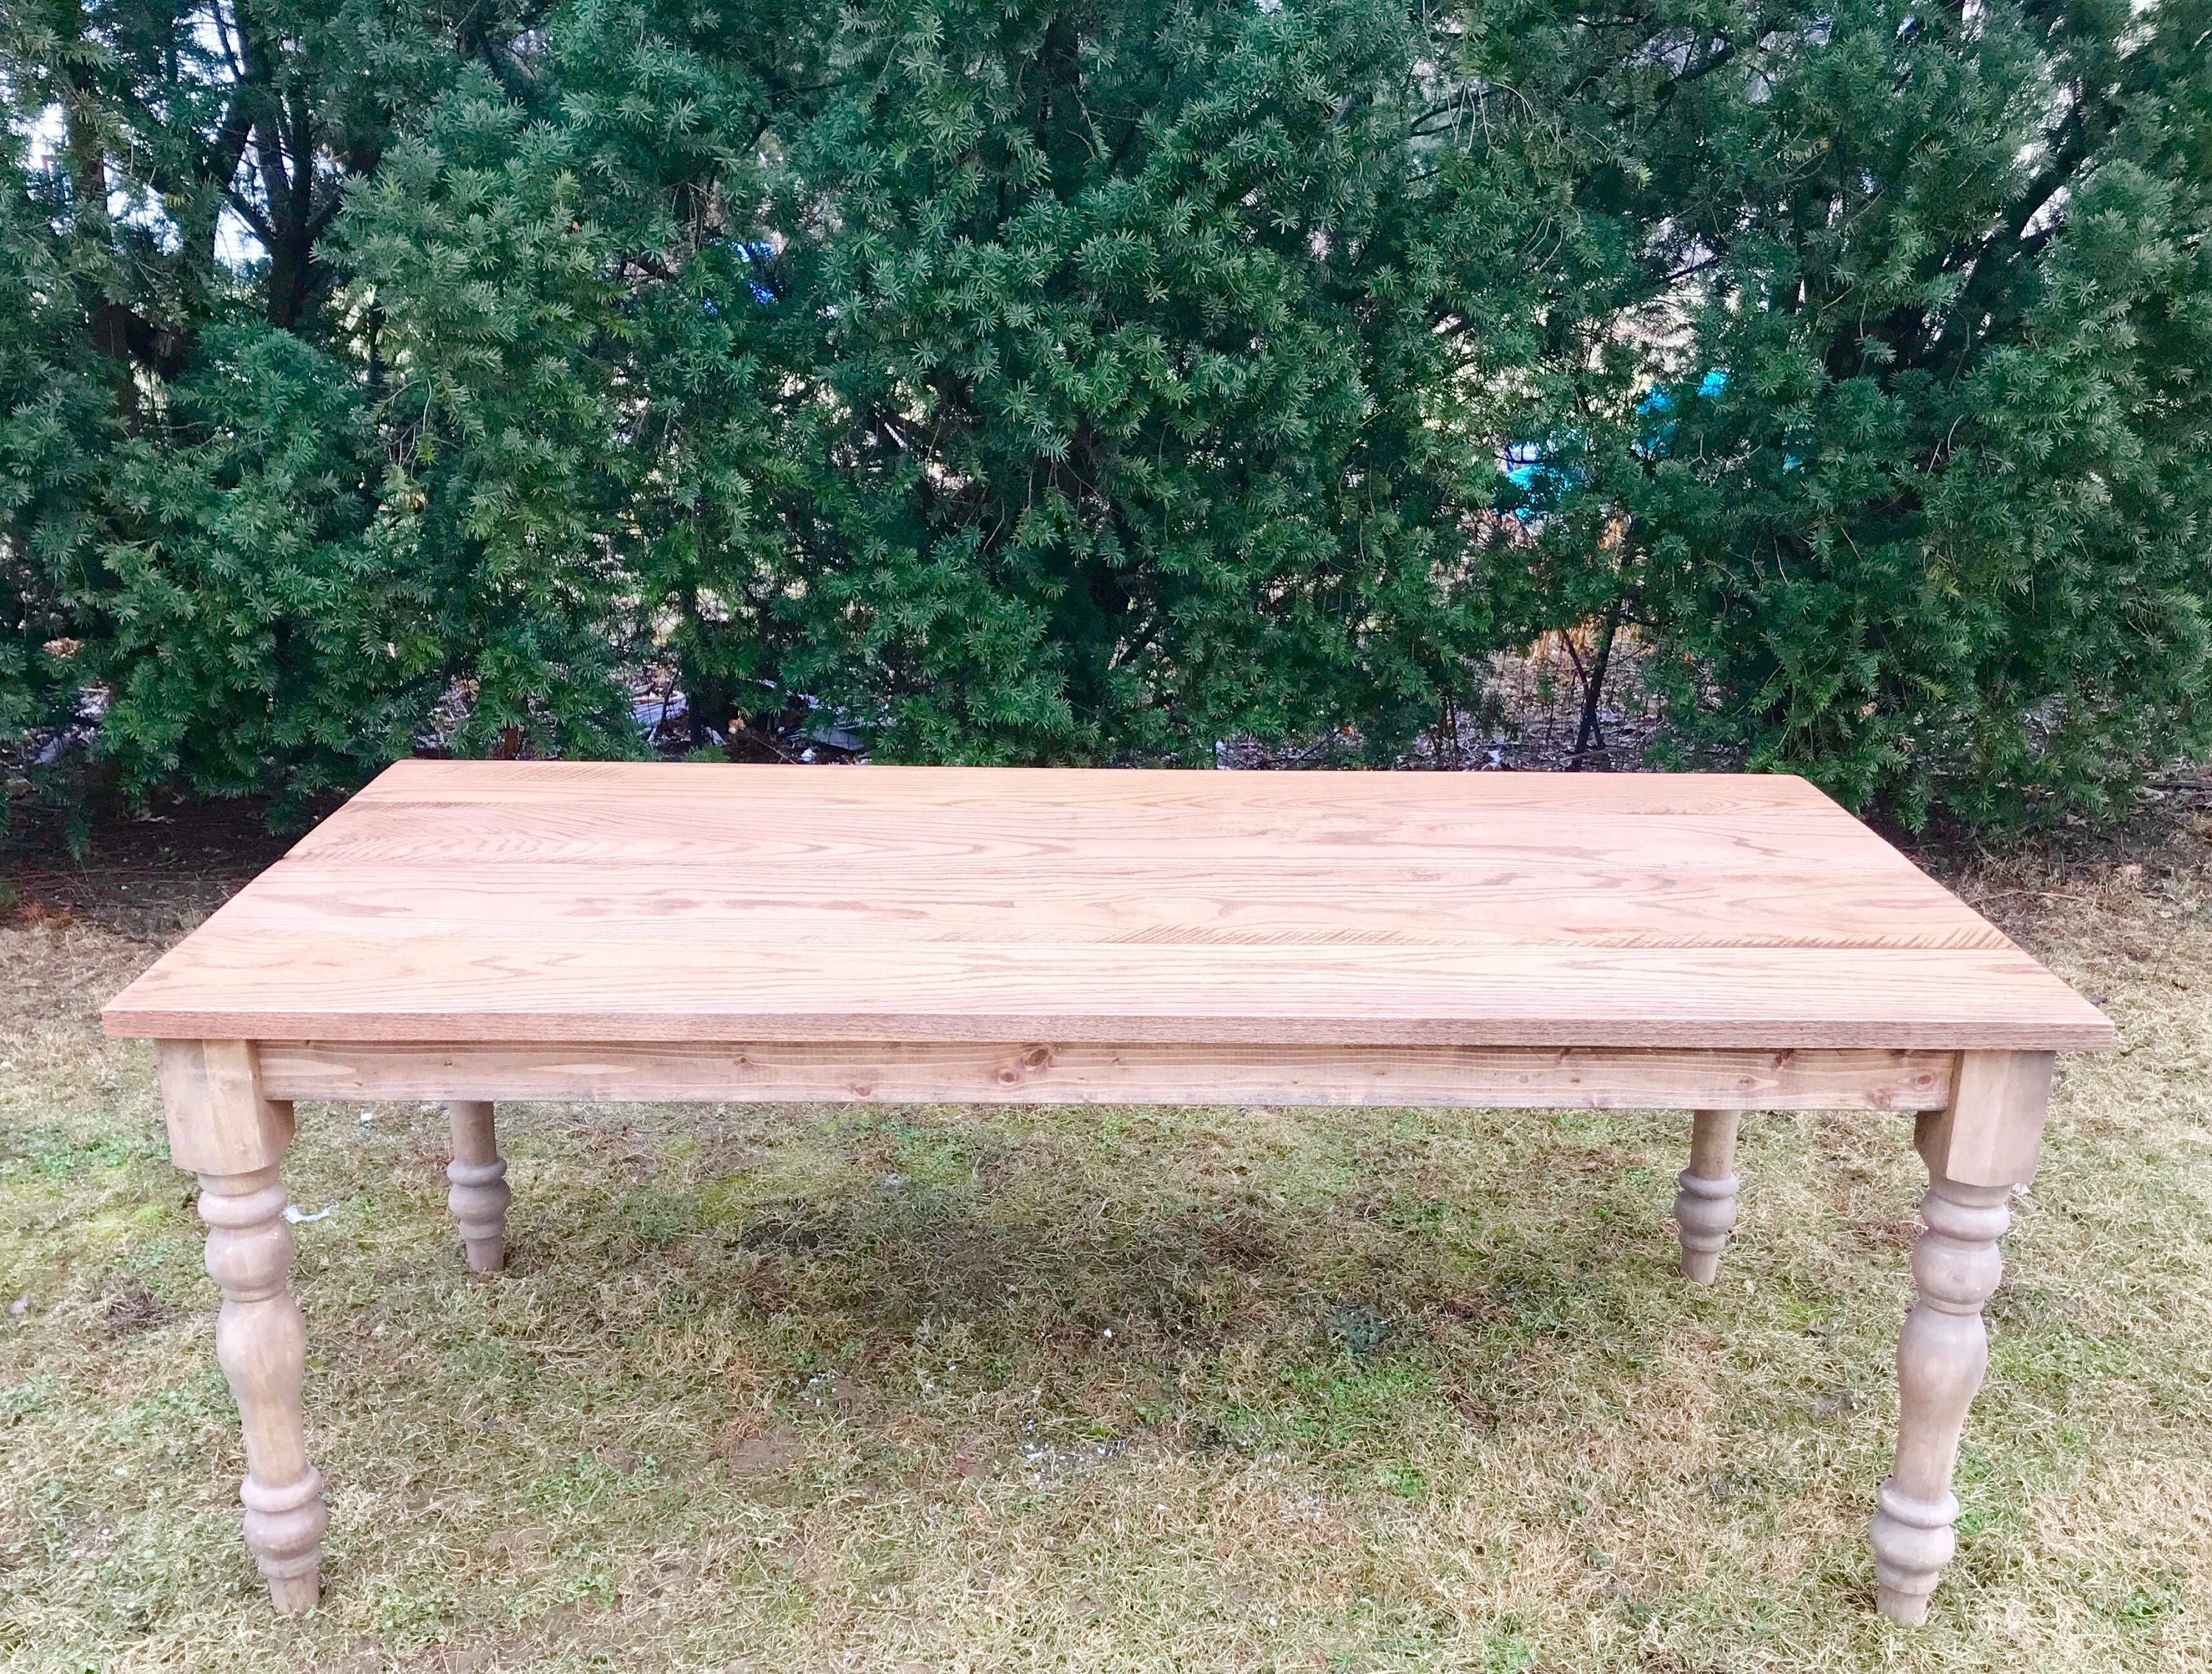 Oak Farm Table, Hardwood Farmhouse Table, Reclaimed Wood Table, Farm Table,  Rustic Farm Table, Custom Farmhouse Table